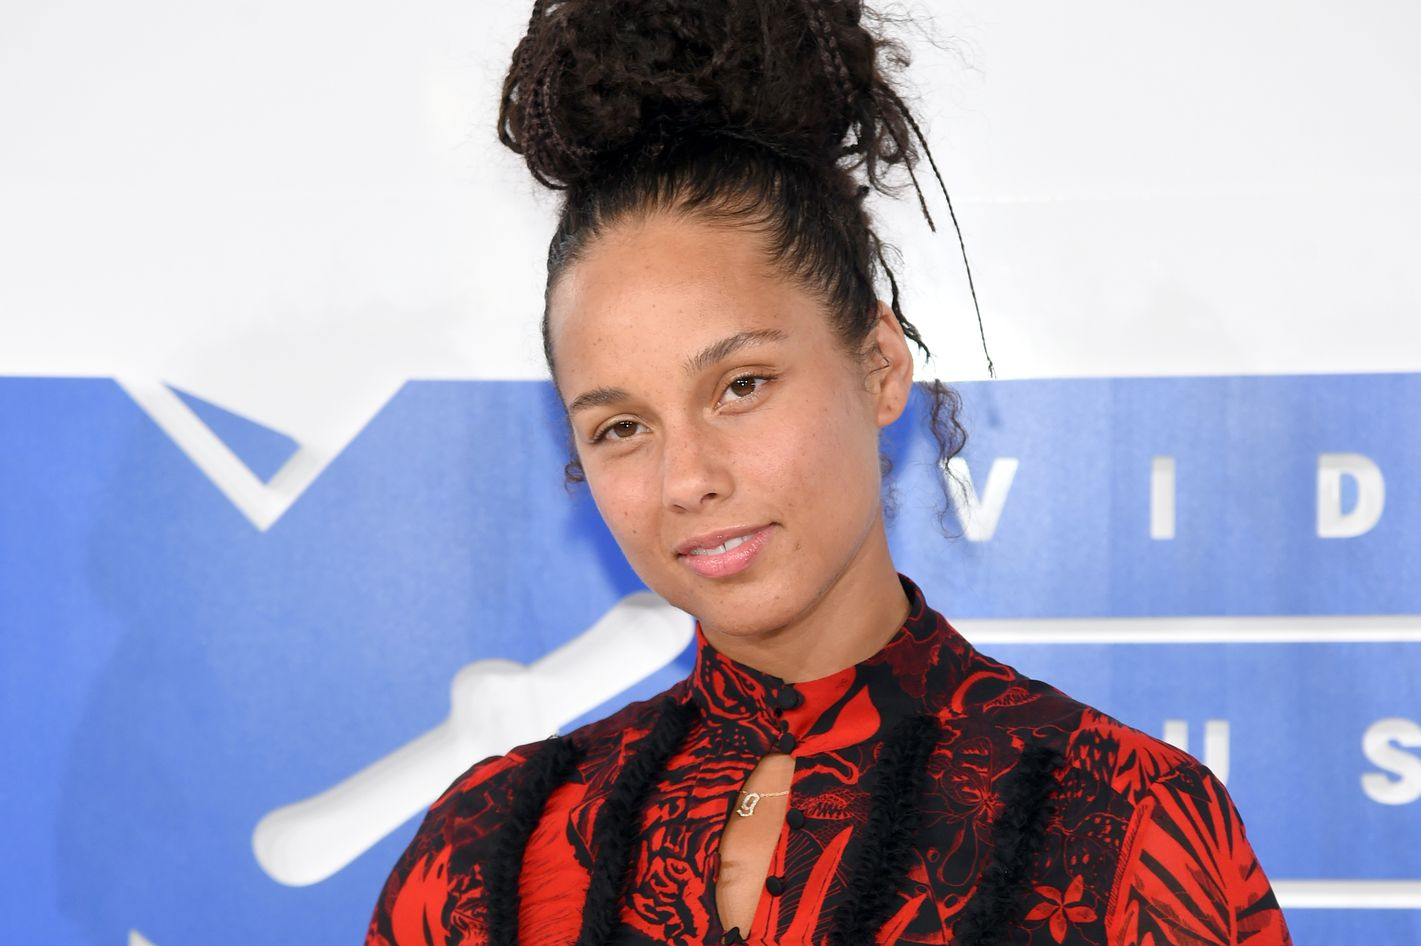 Alicia Keys Didn't Wear Any Makeup to the VMAs Alicia Keys